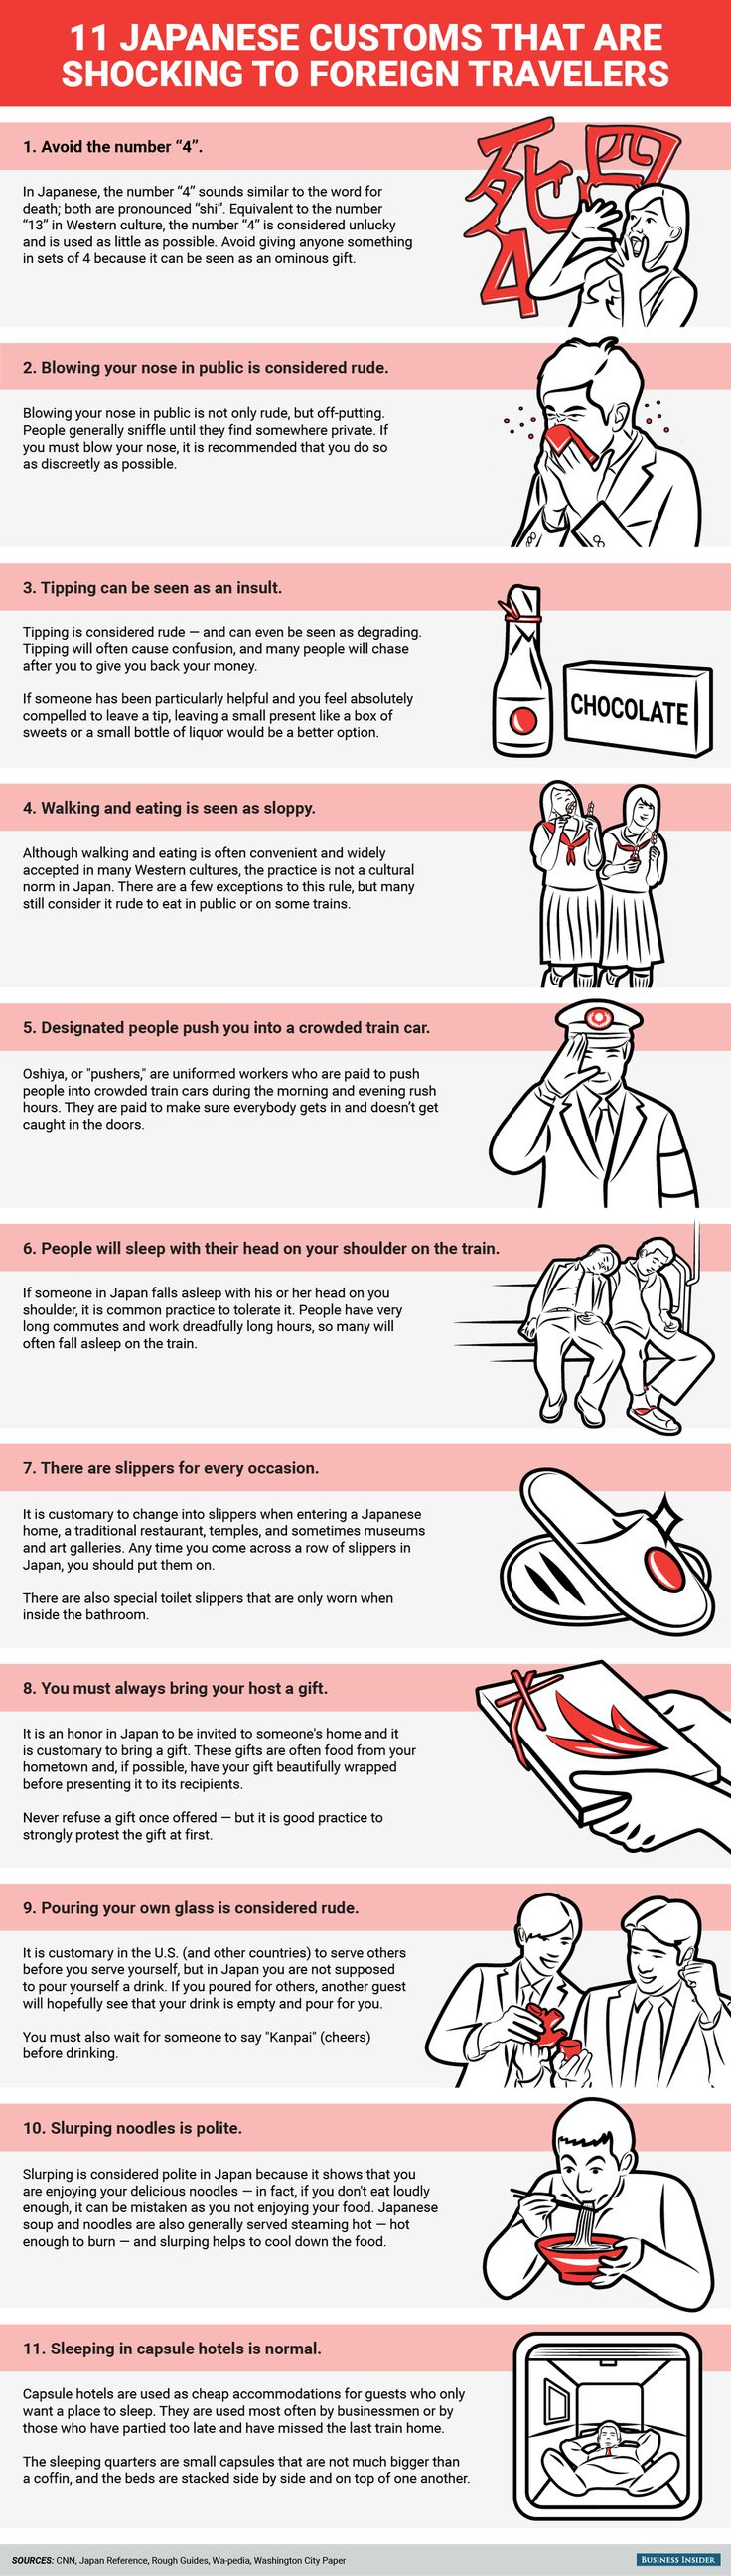 BI_Graphics_11 Japanese customs that are shocking to foreigners